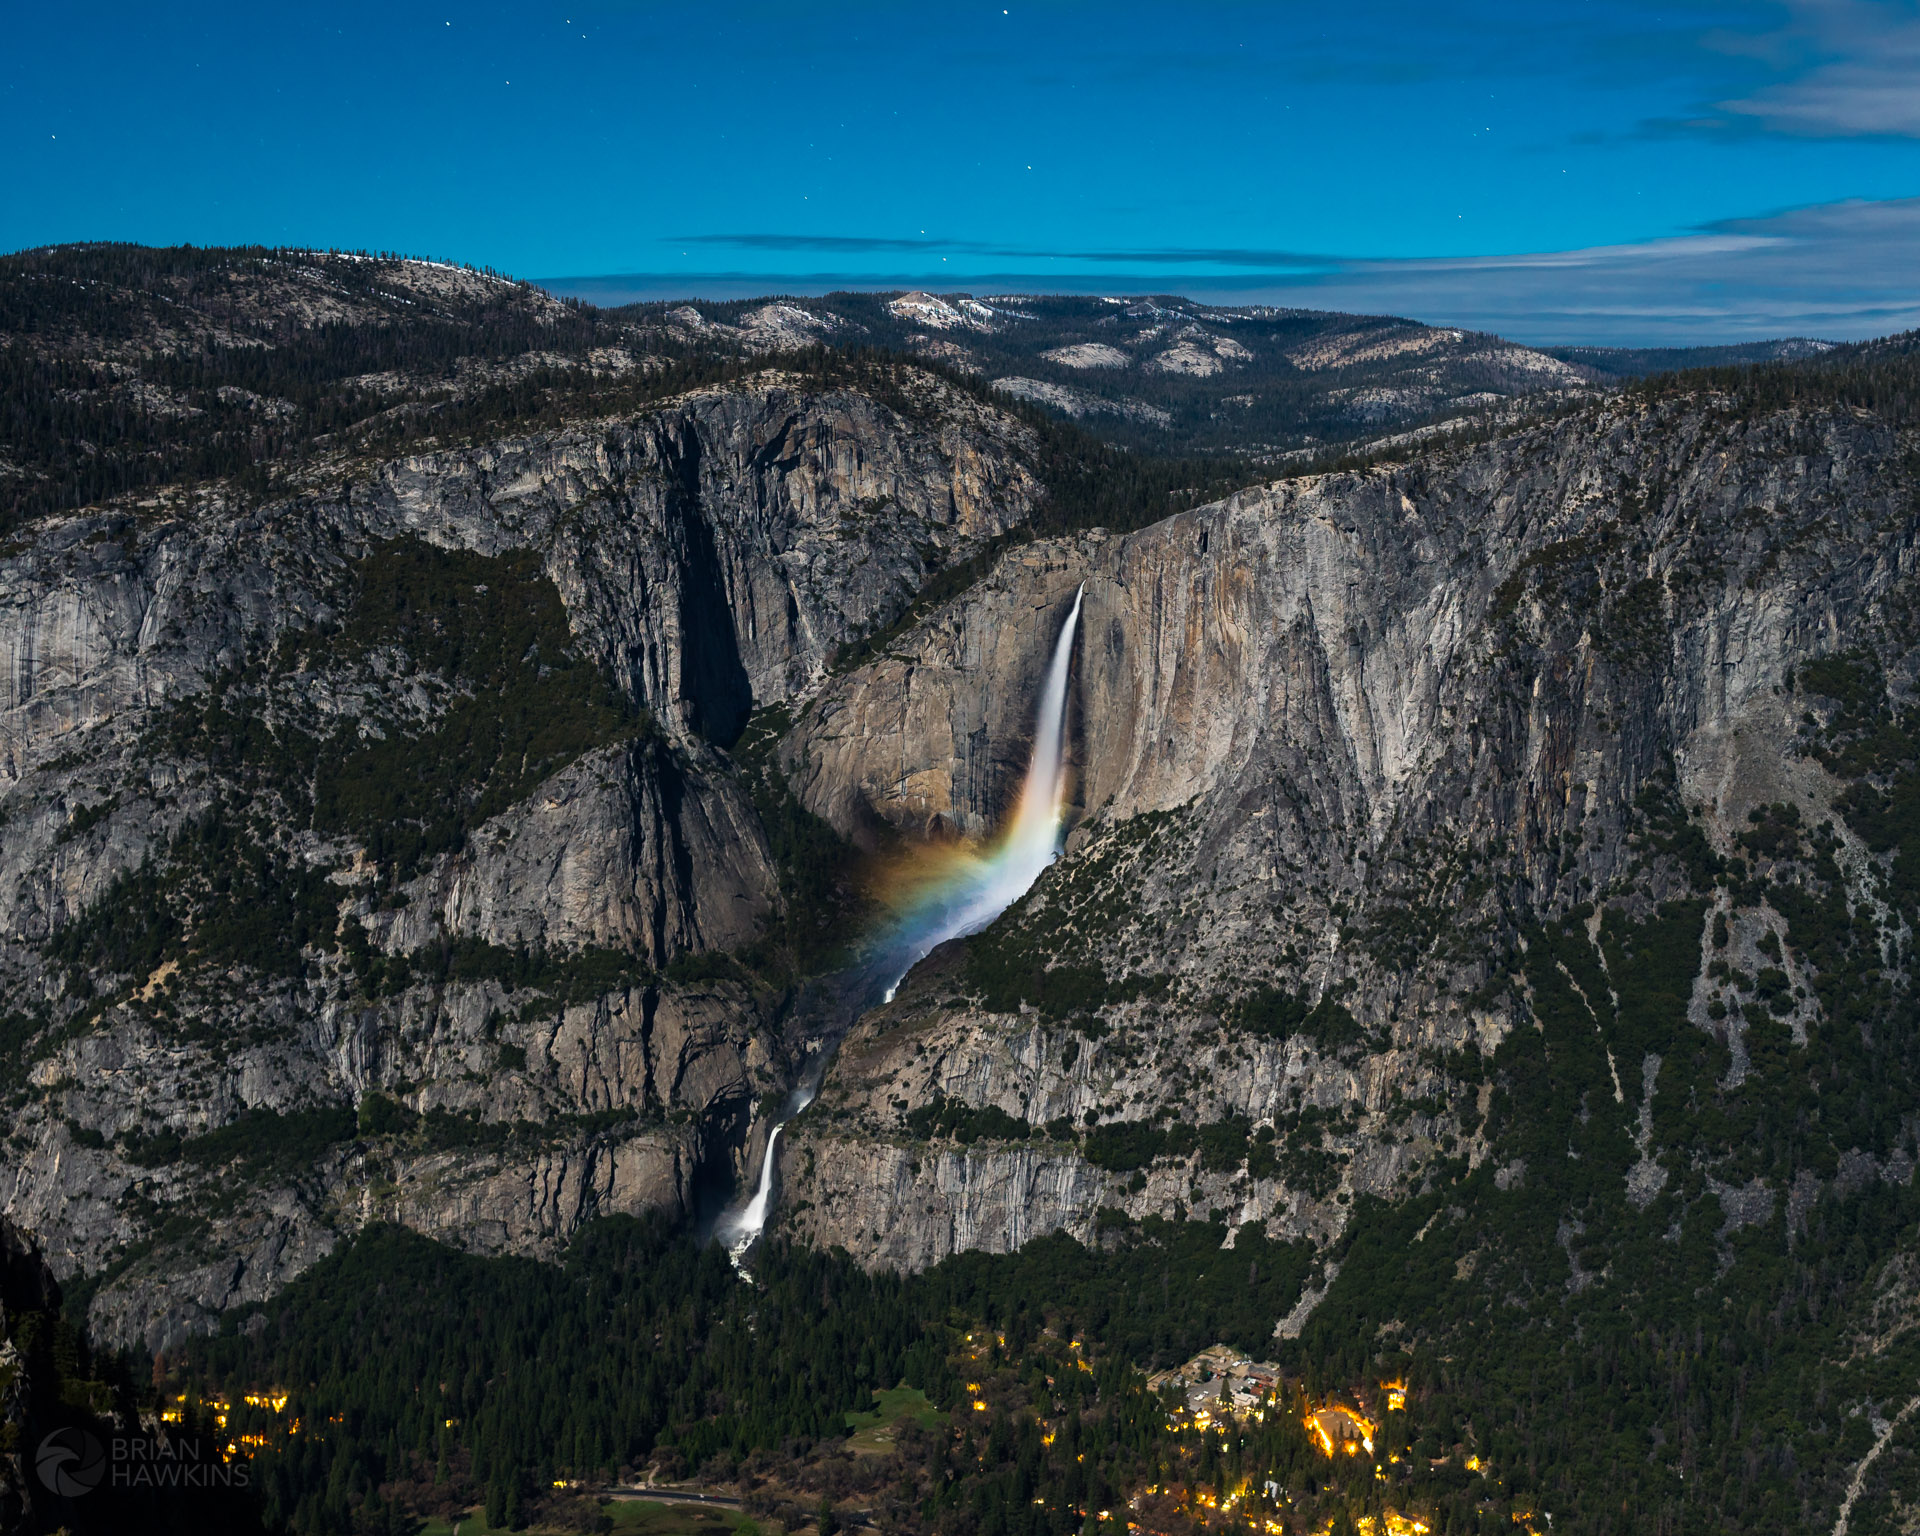 Moonbow in Yosemite Falls as seen from Glacier Point just before midnight April 28, 2018